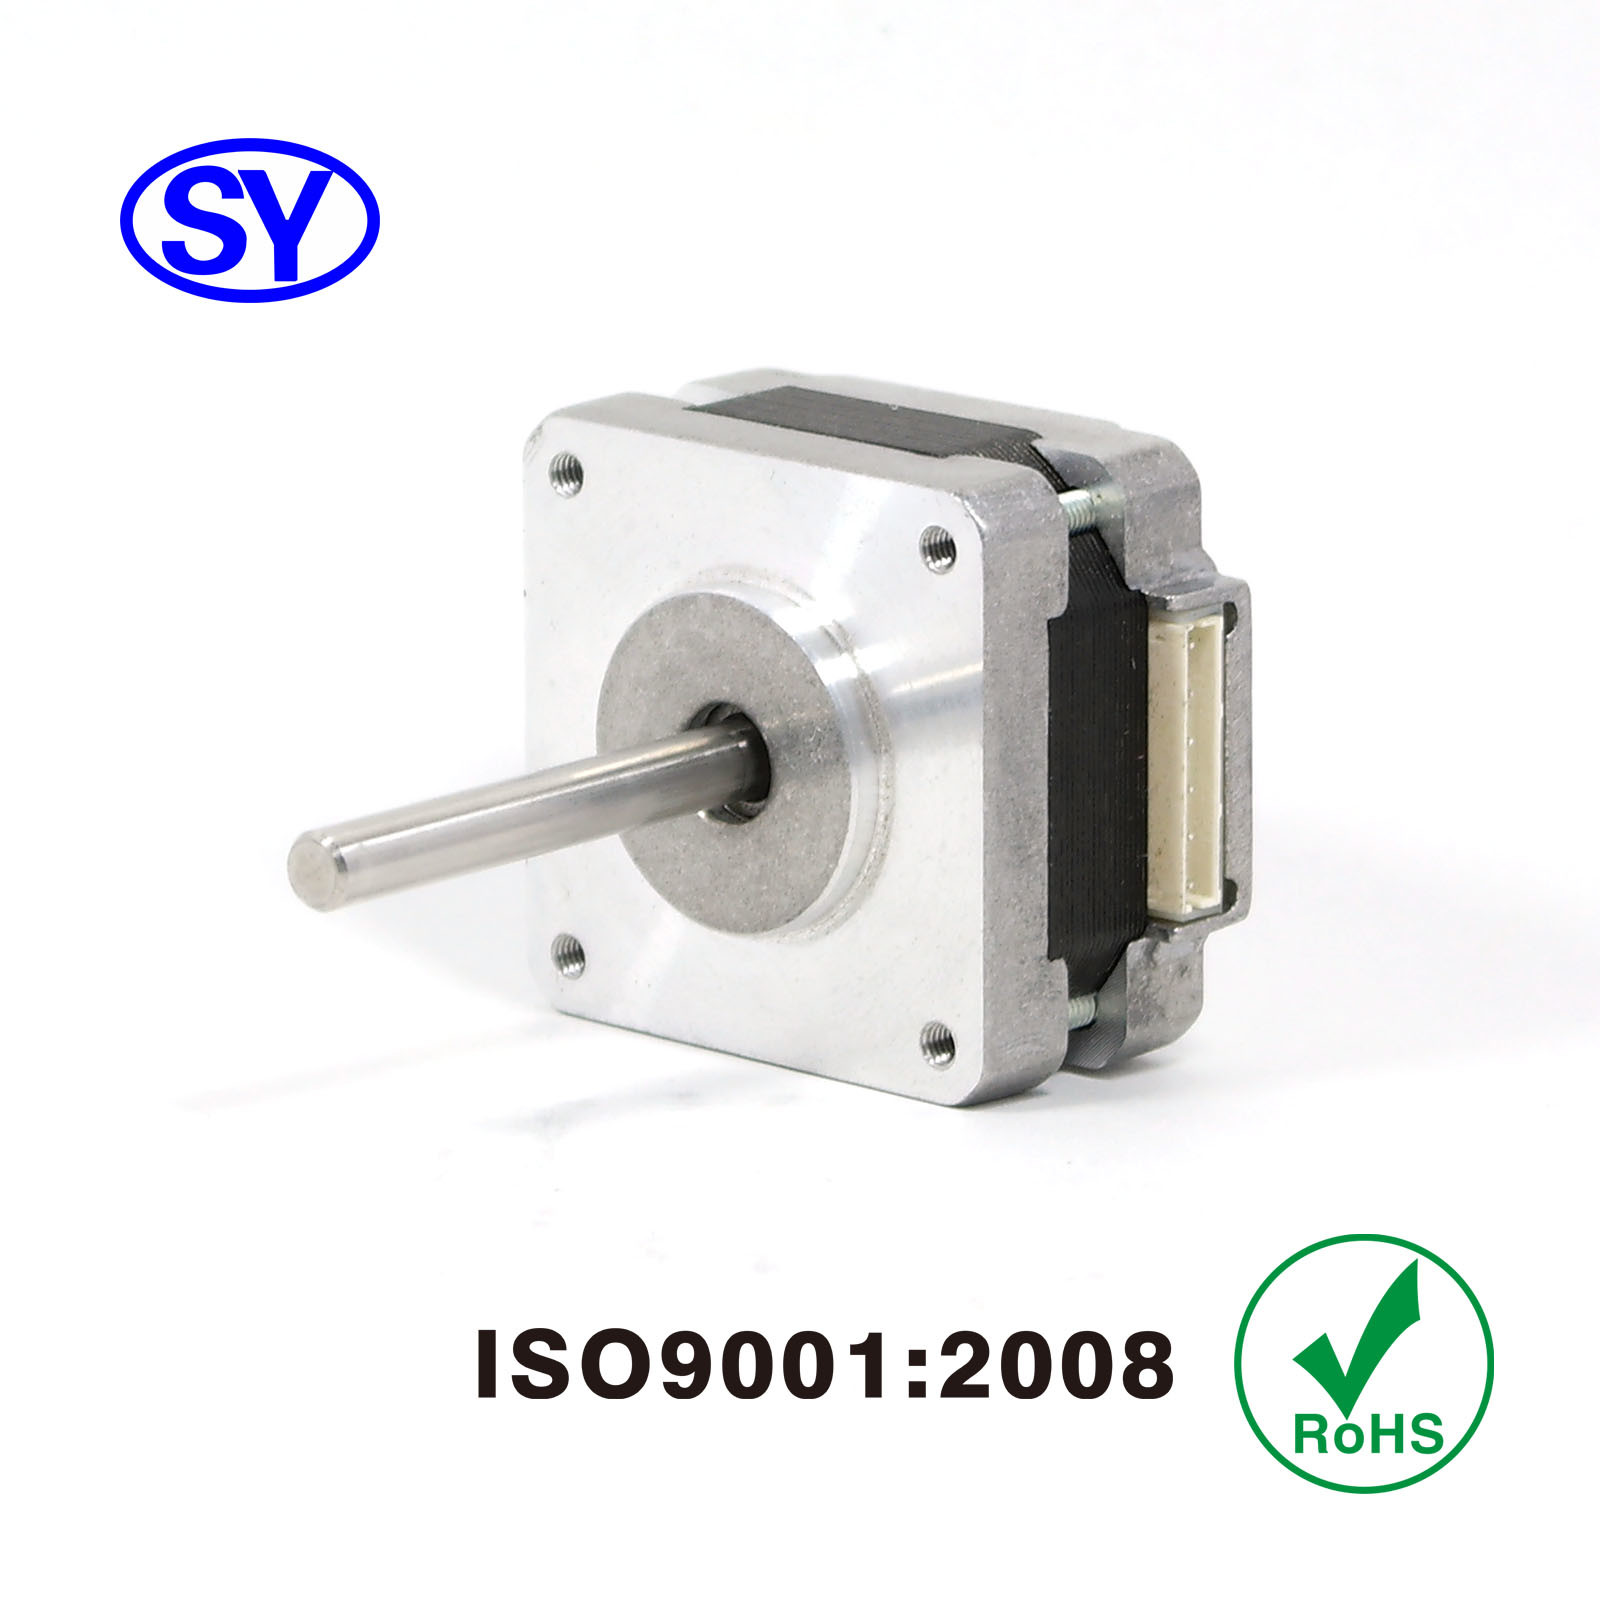 39 Mm (NEMA 16) 1.8 Degree Stepper Electrical Motor